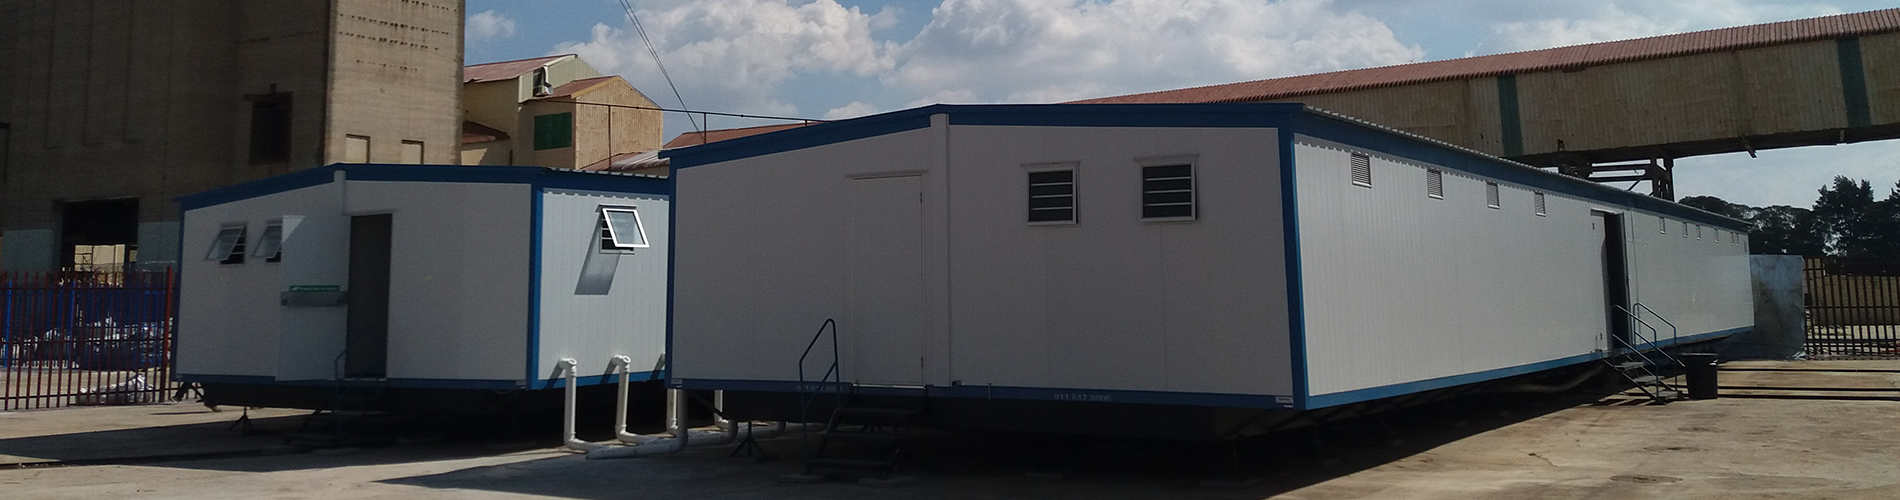 What is site office? It is an onsite office, also known as temporary office trailers but are, in fact, temporary office buildings, sometimes called portable office buildings.